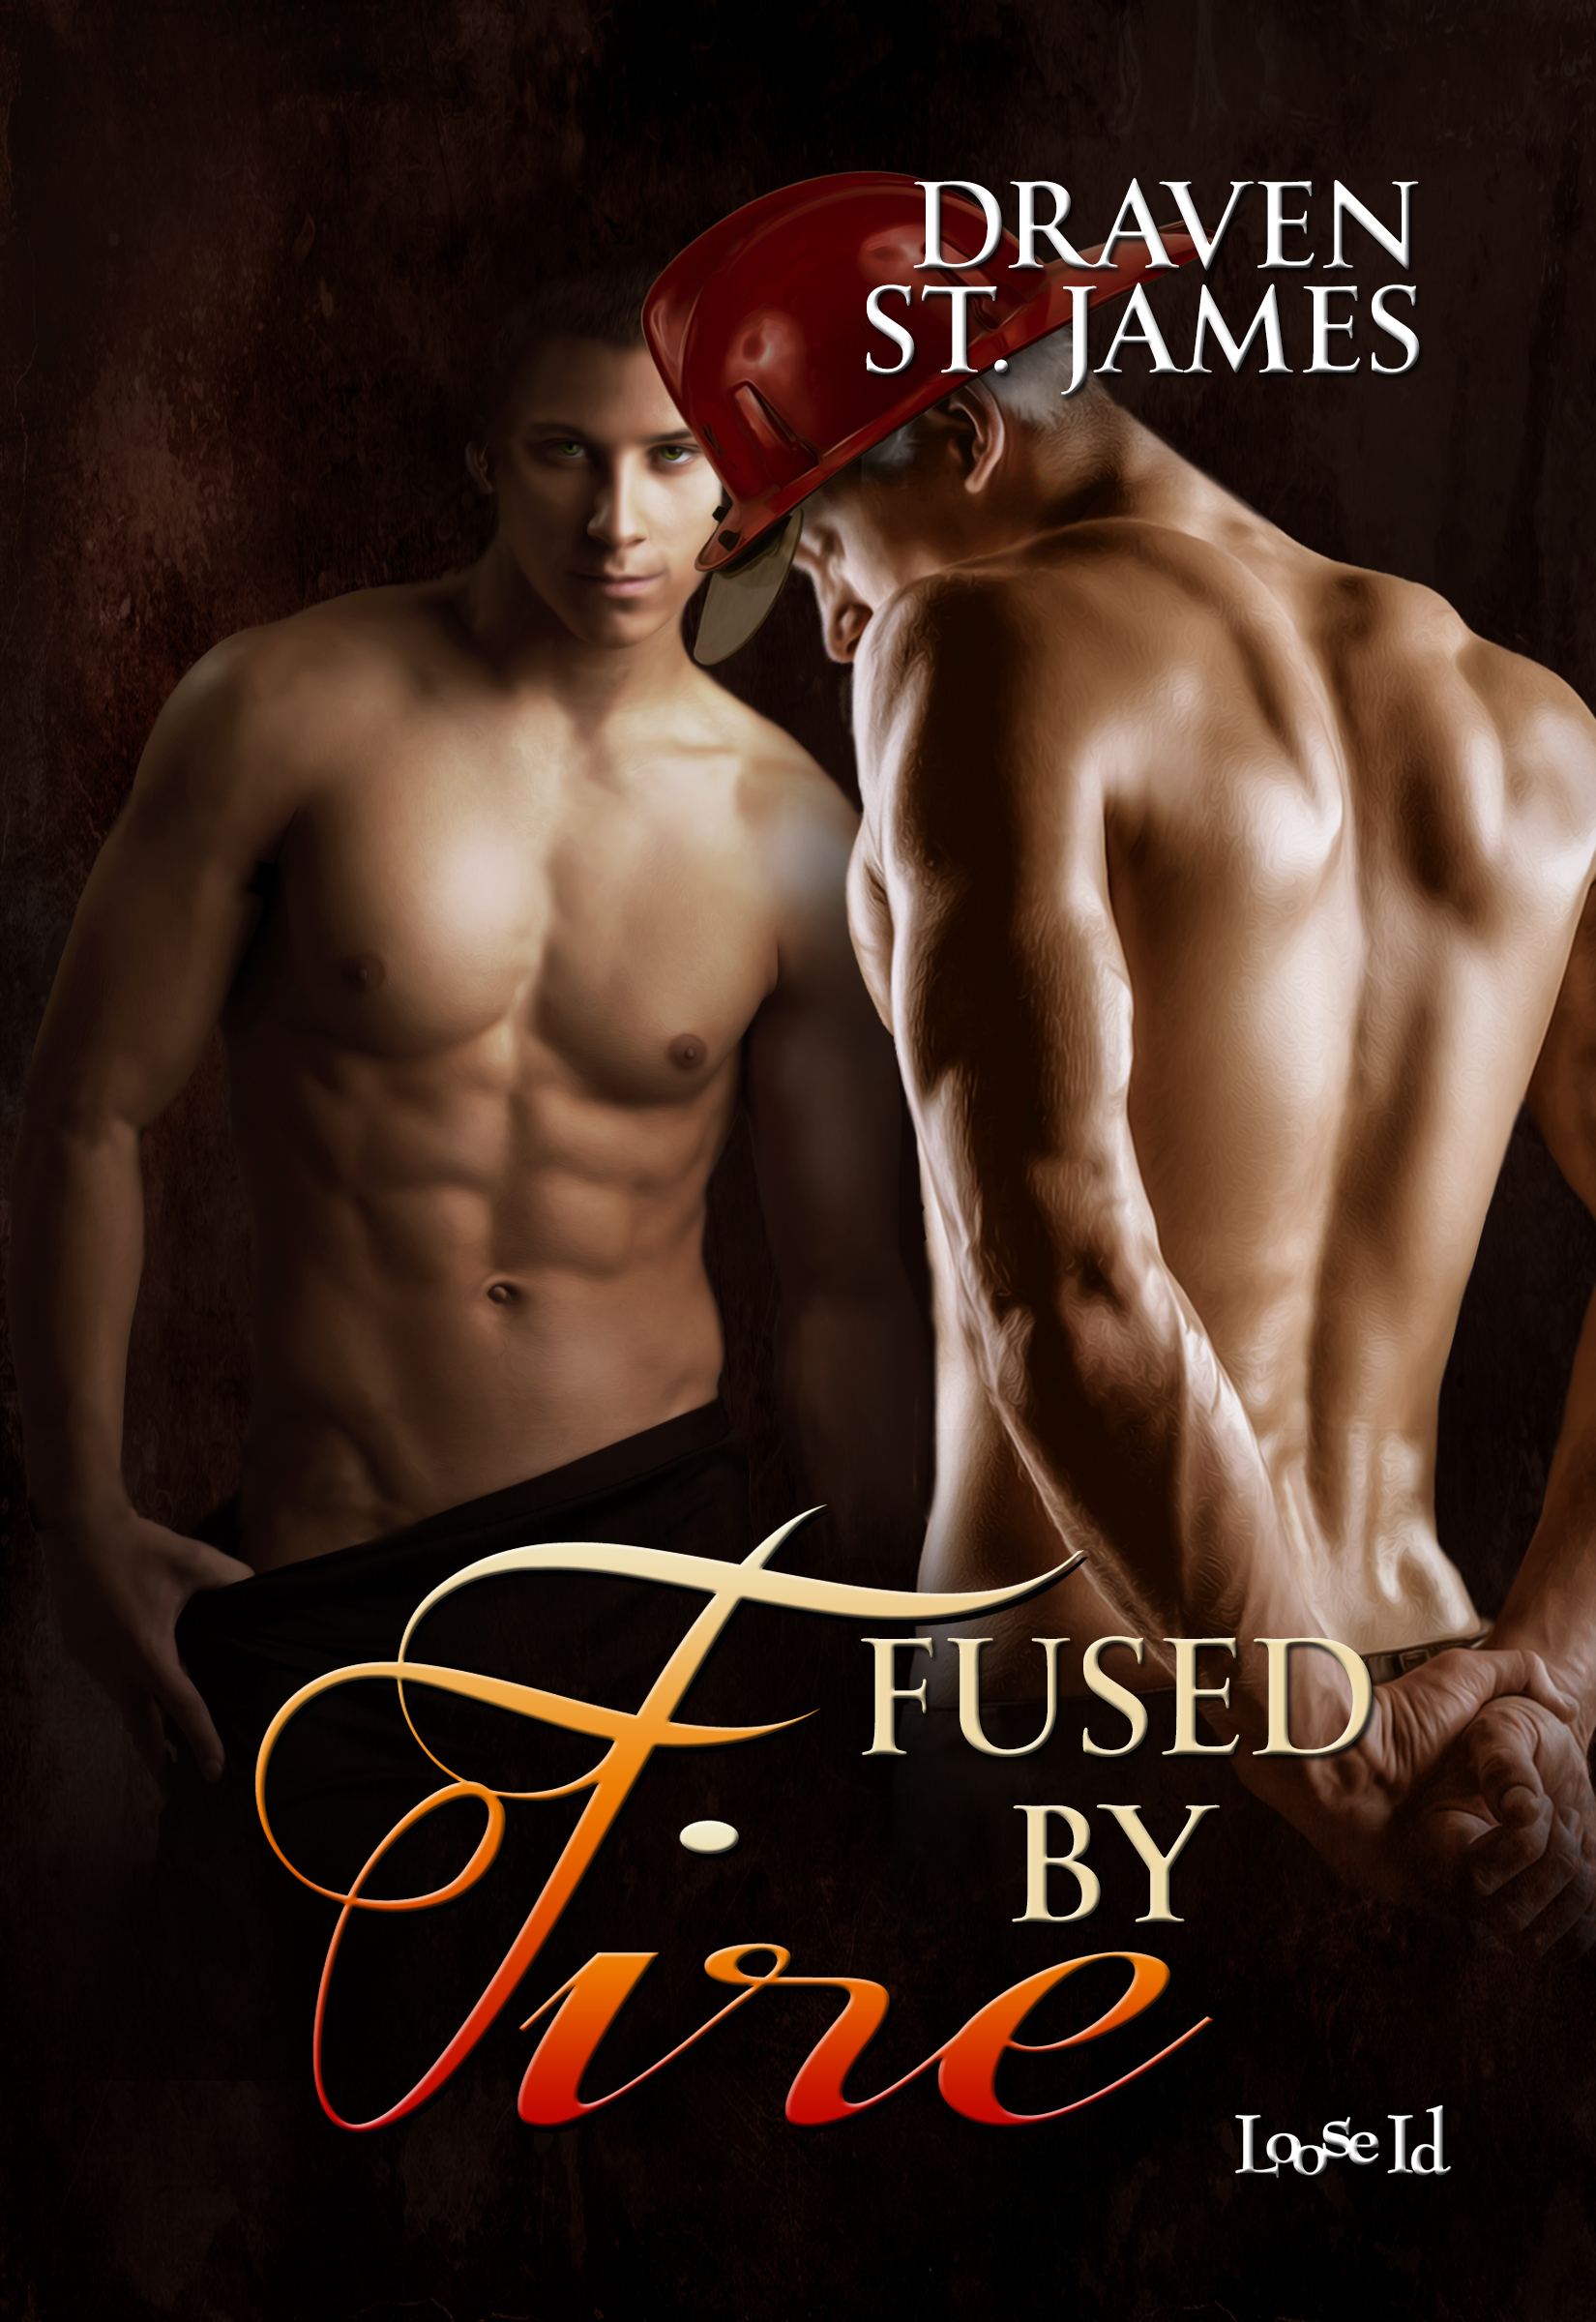 Review: Fused by Fire by Draven St. James